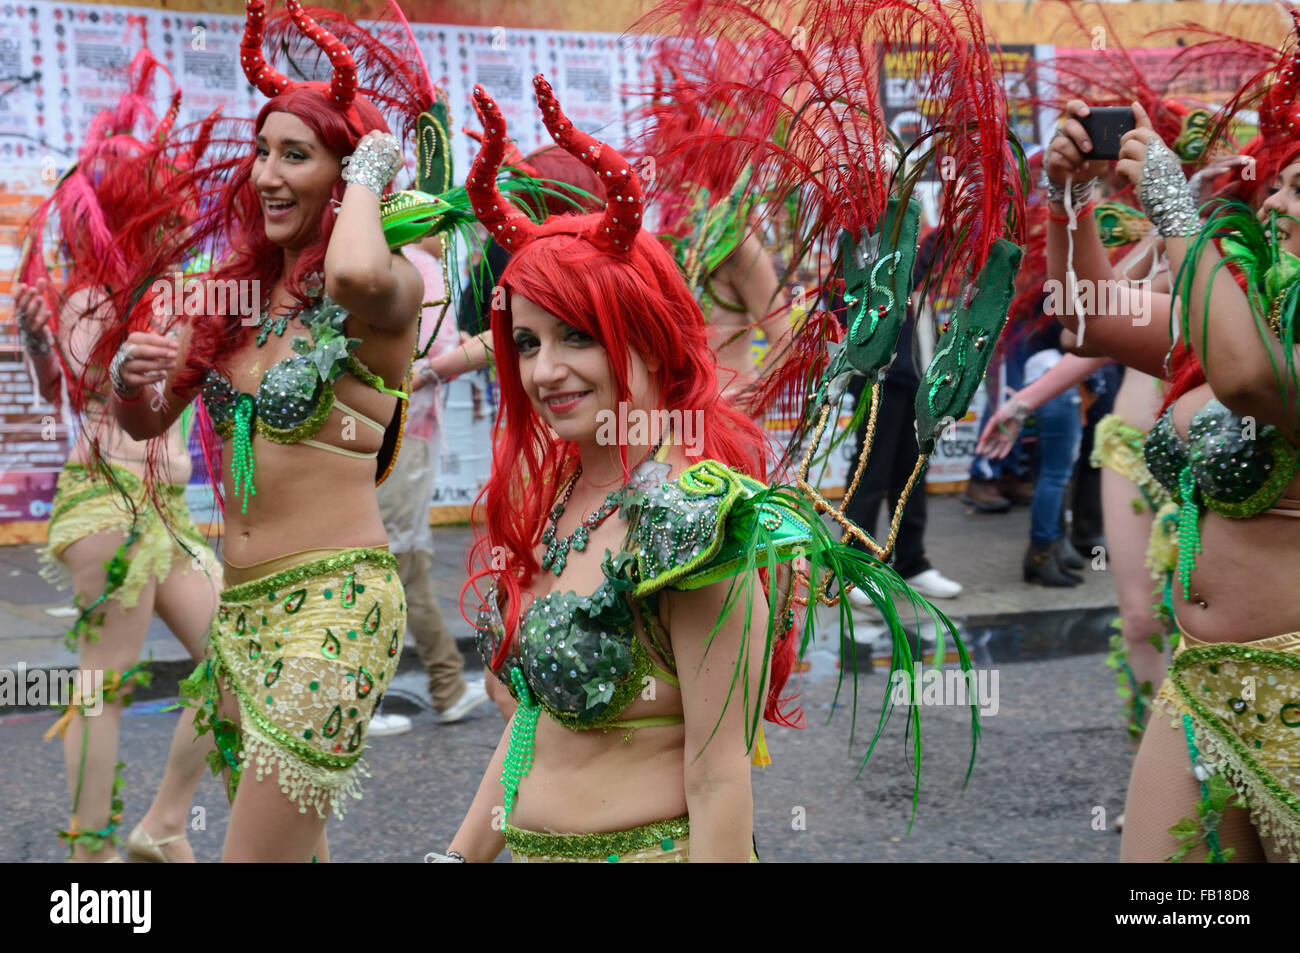 Dancers in green, at Notting Hill carnival.London, England. - Stock Image